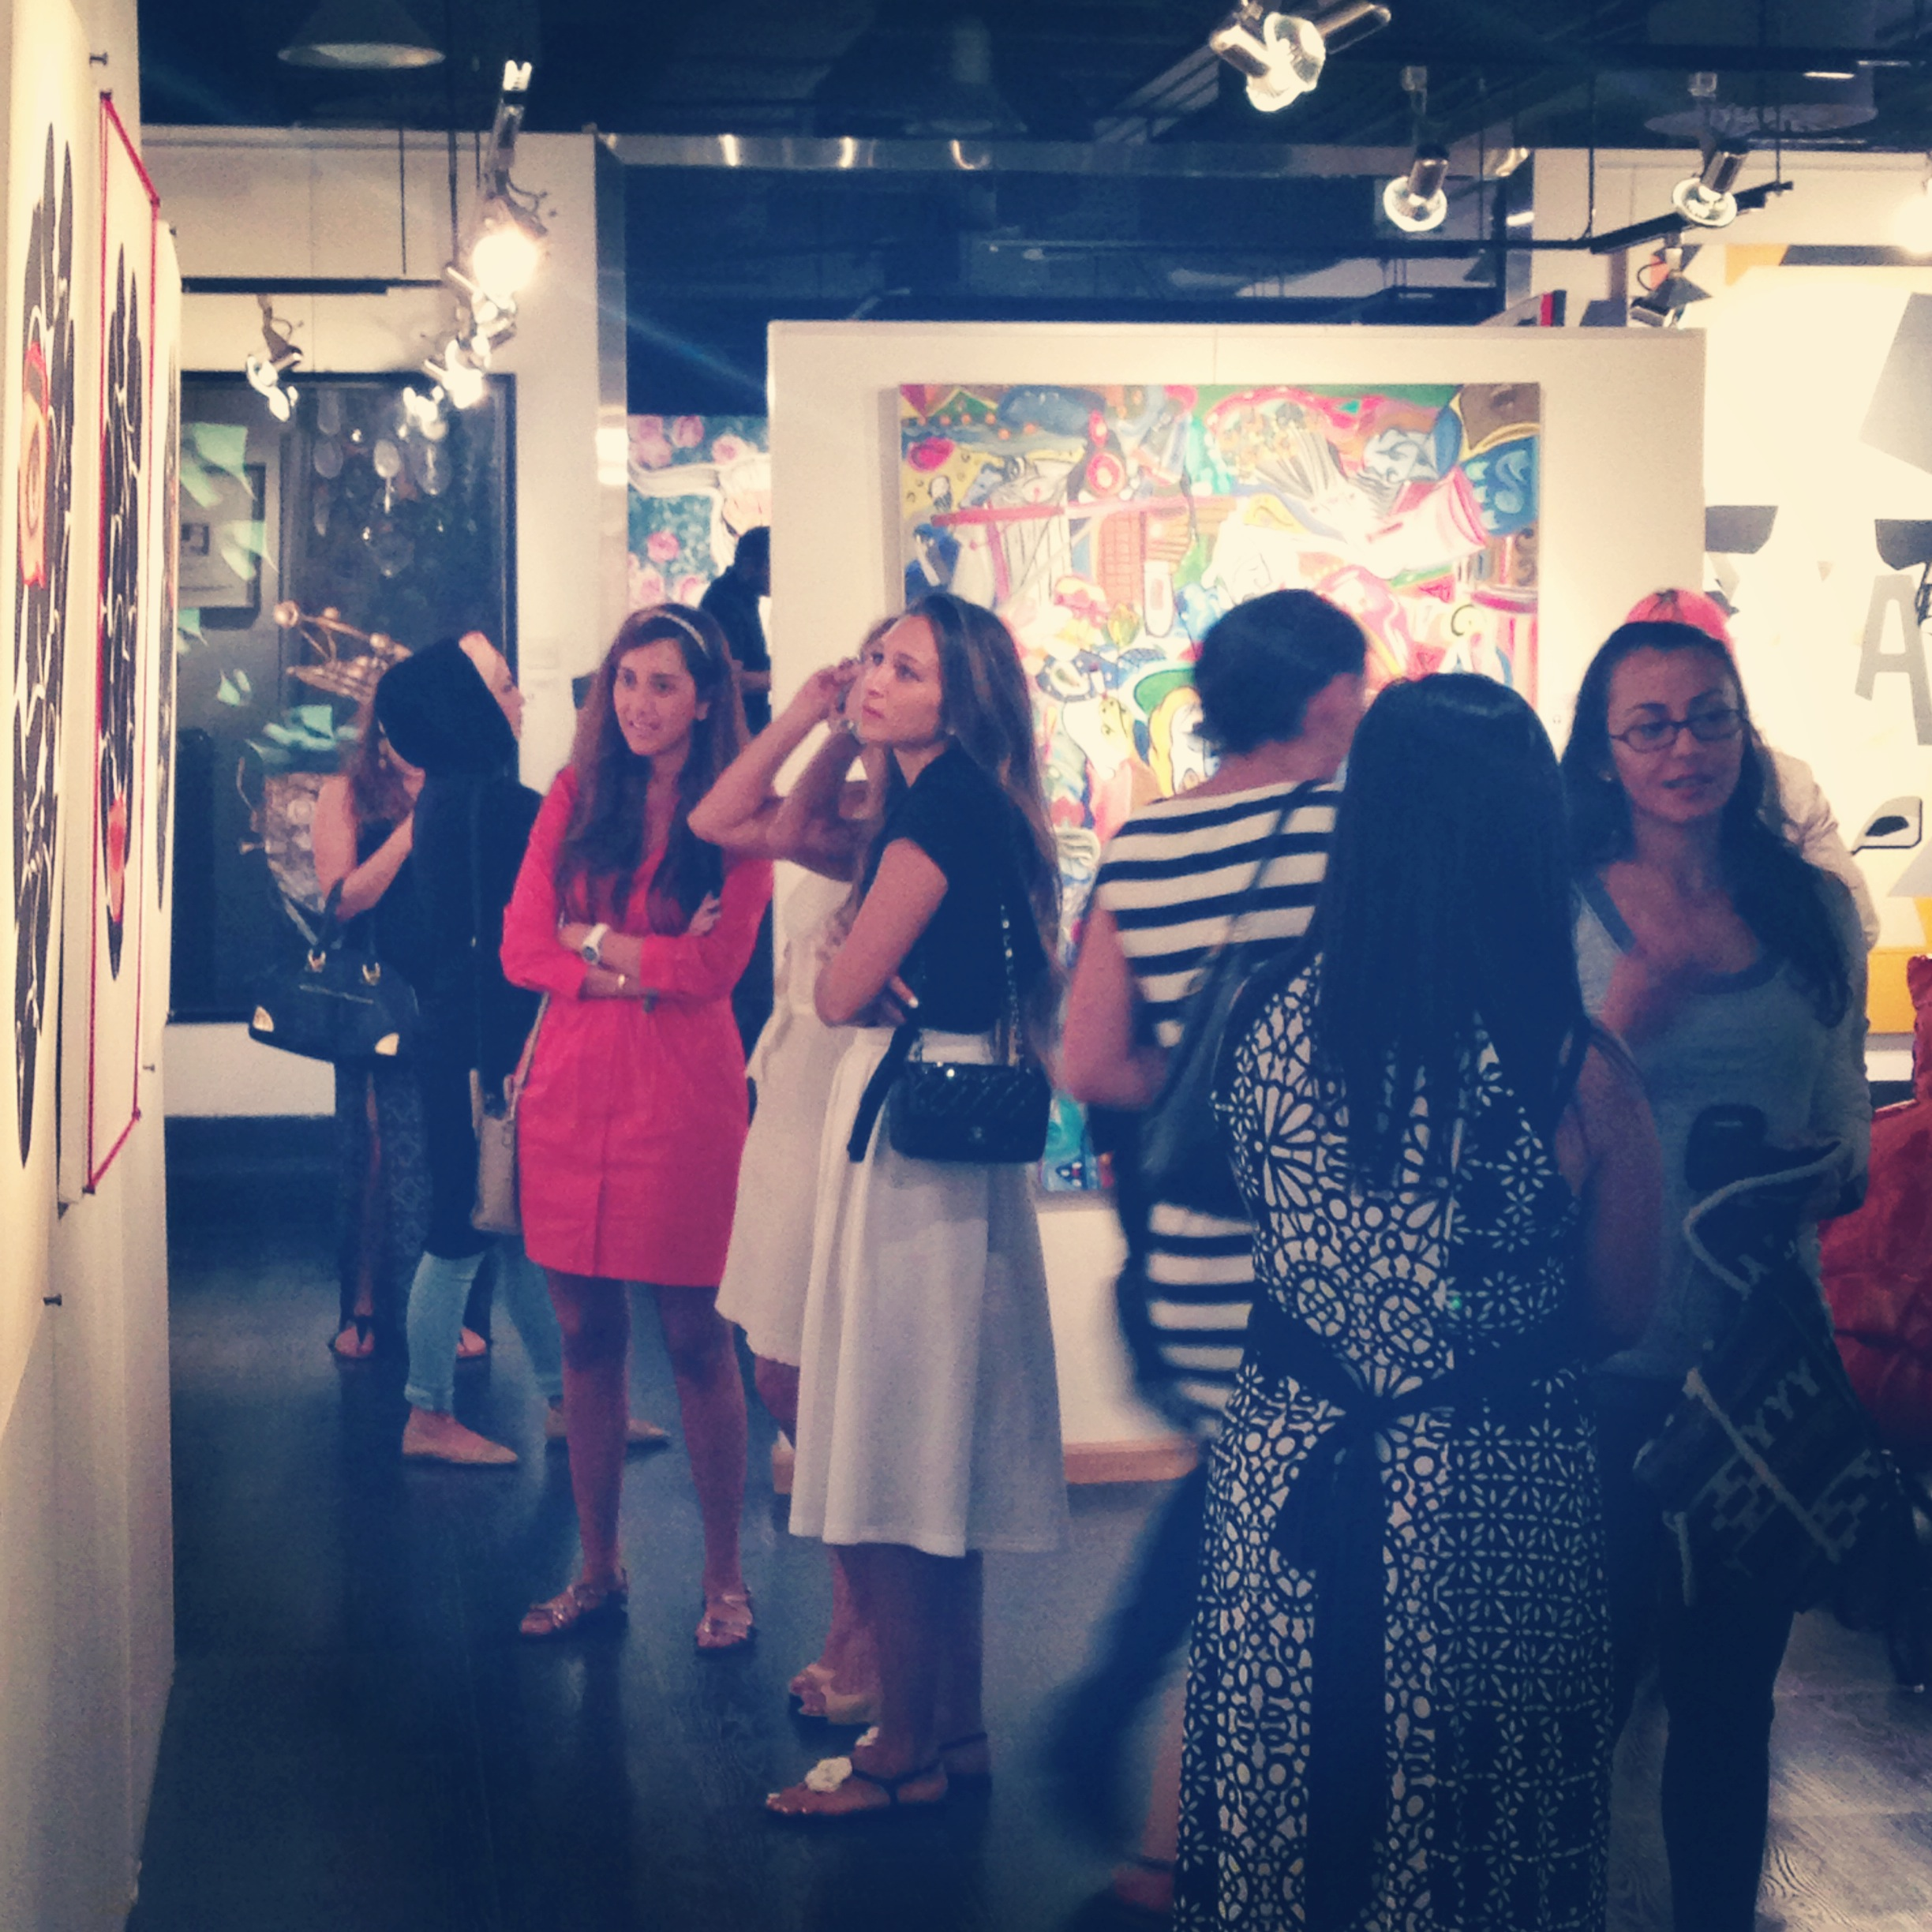 The art hungry crowds at Pro Art